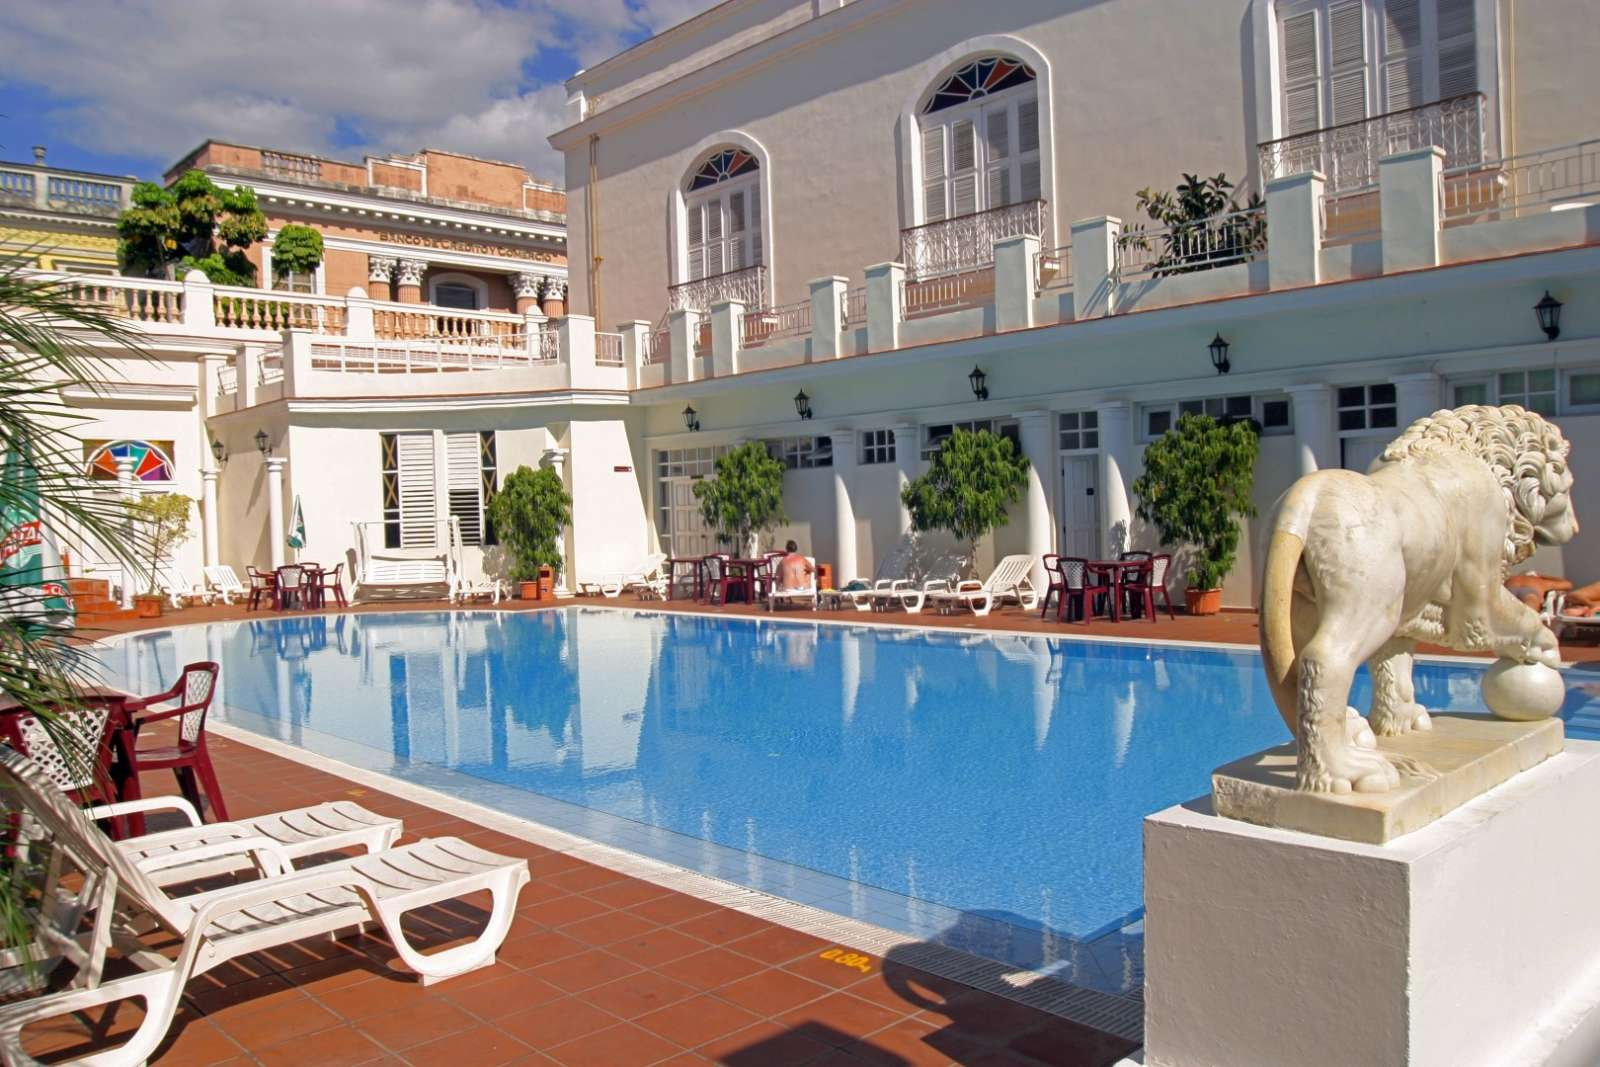 Swimming pool at Melia Union hotel in Cienfuegos